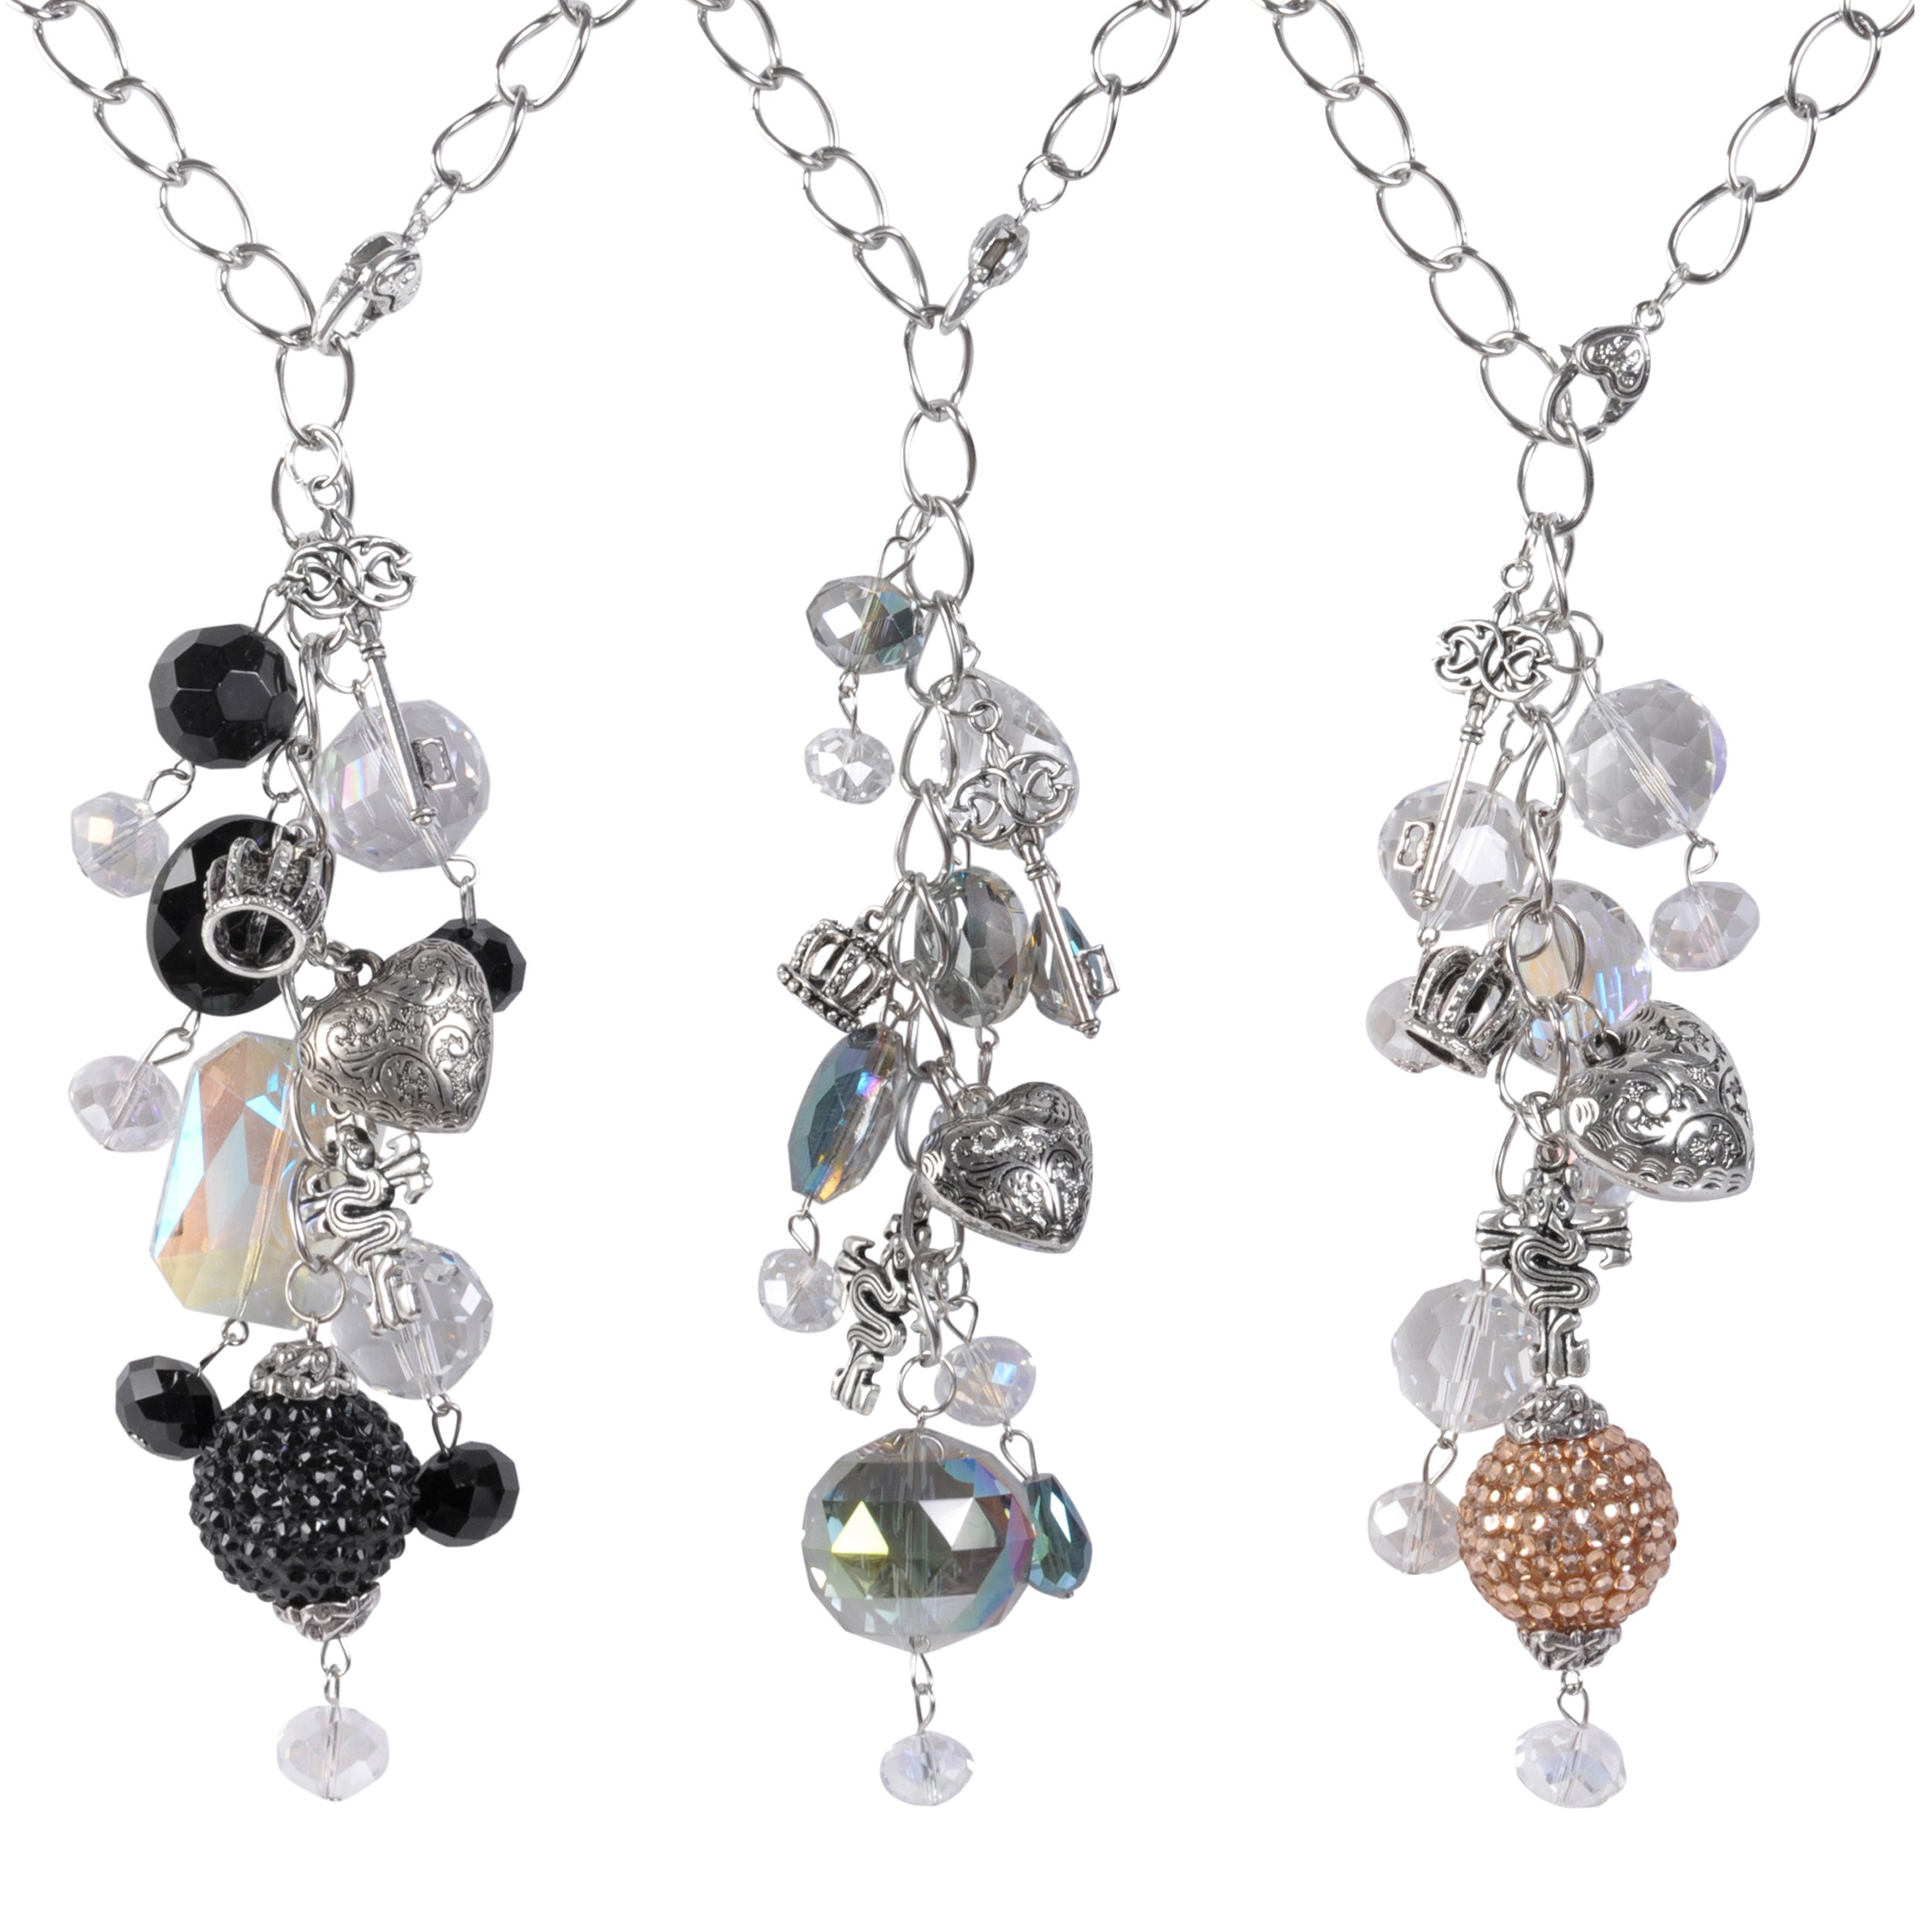 Journee Collection Silvertone Glass Stone Heart Crown Charm Necklace